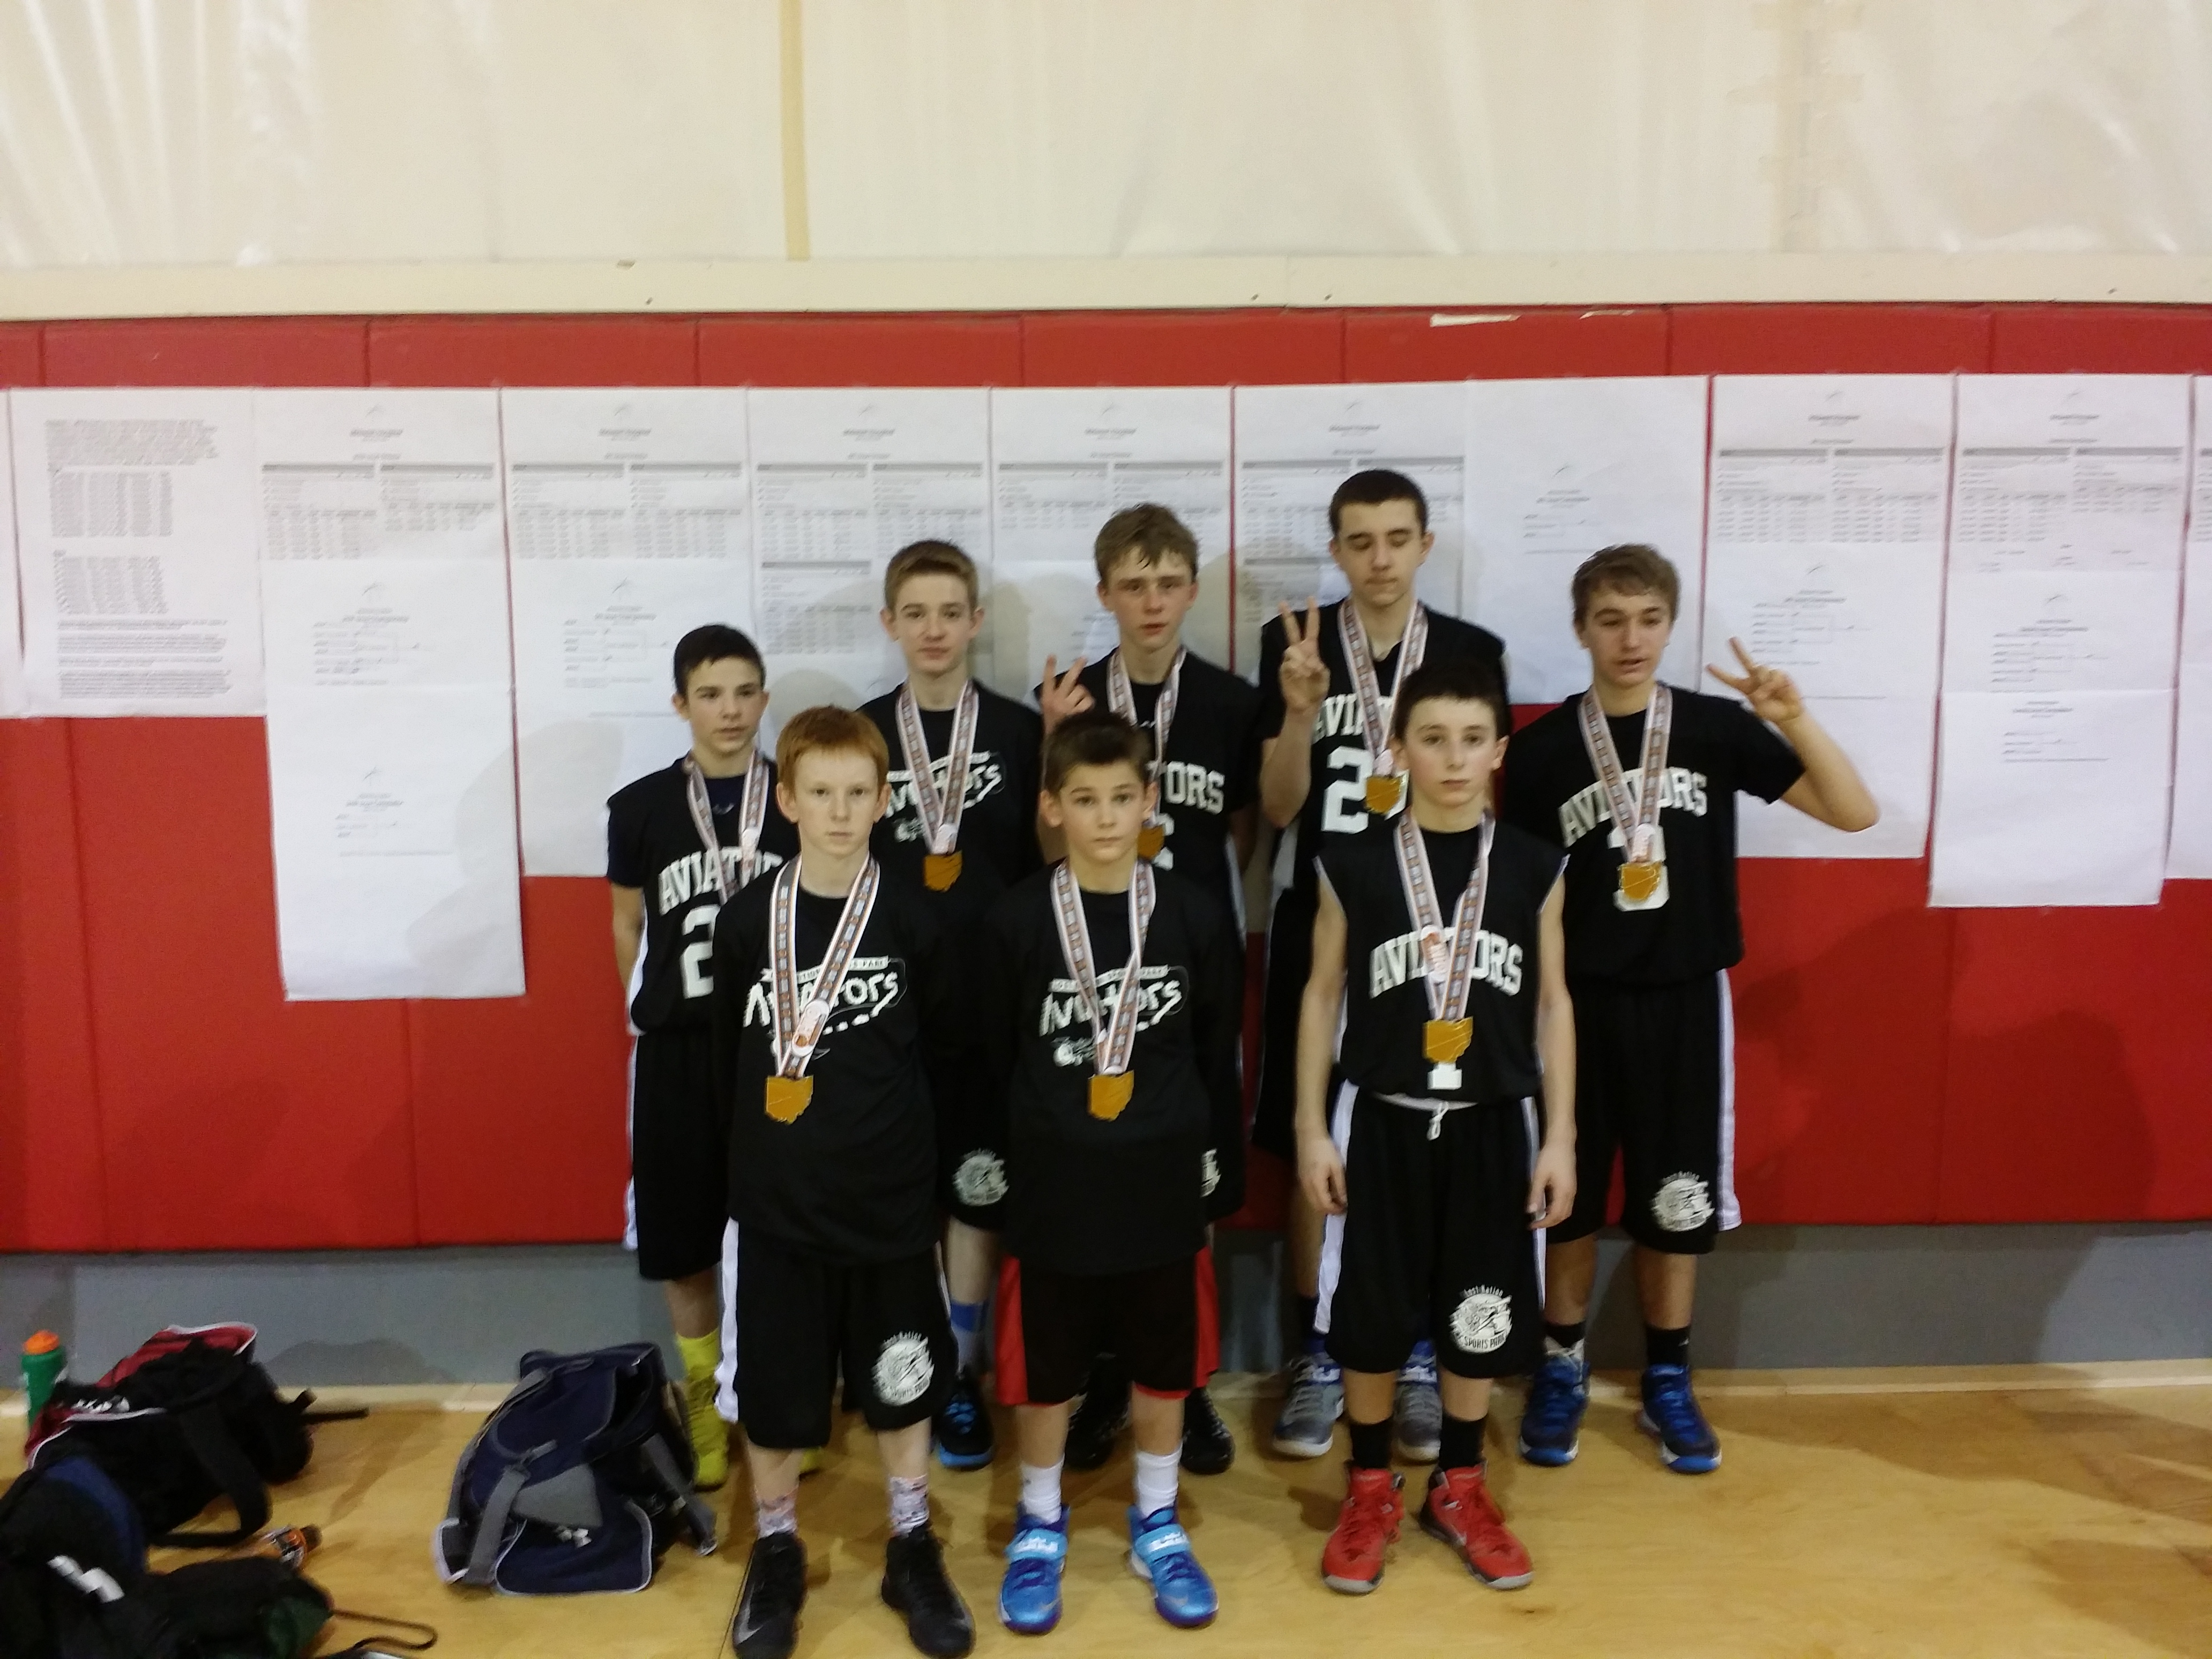 7th Grade Boys Runner-up – Aviators